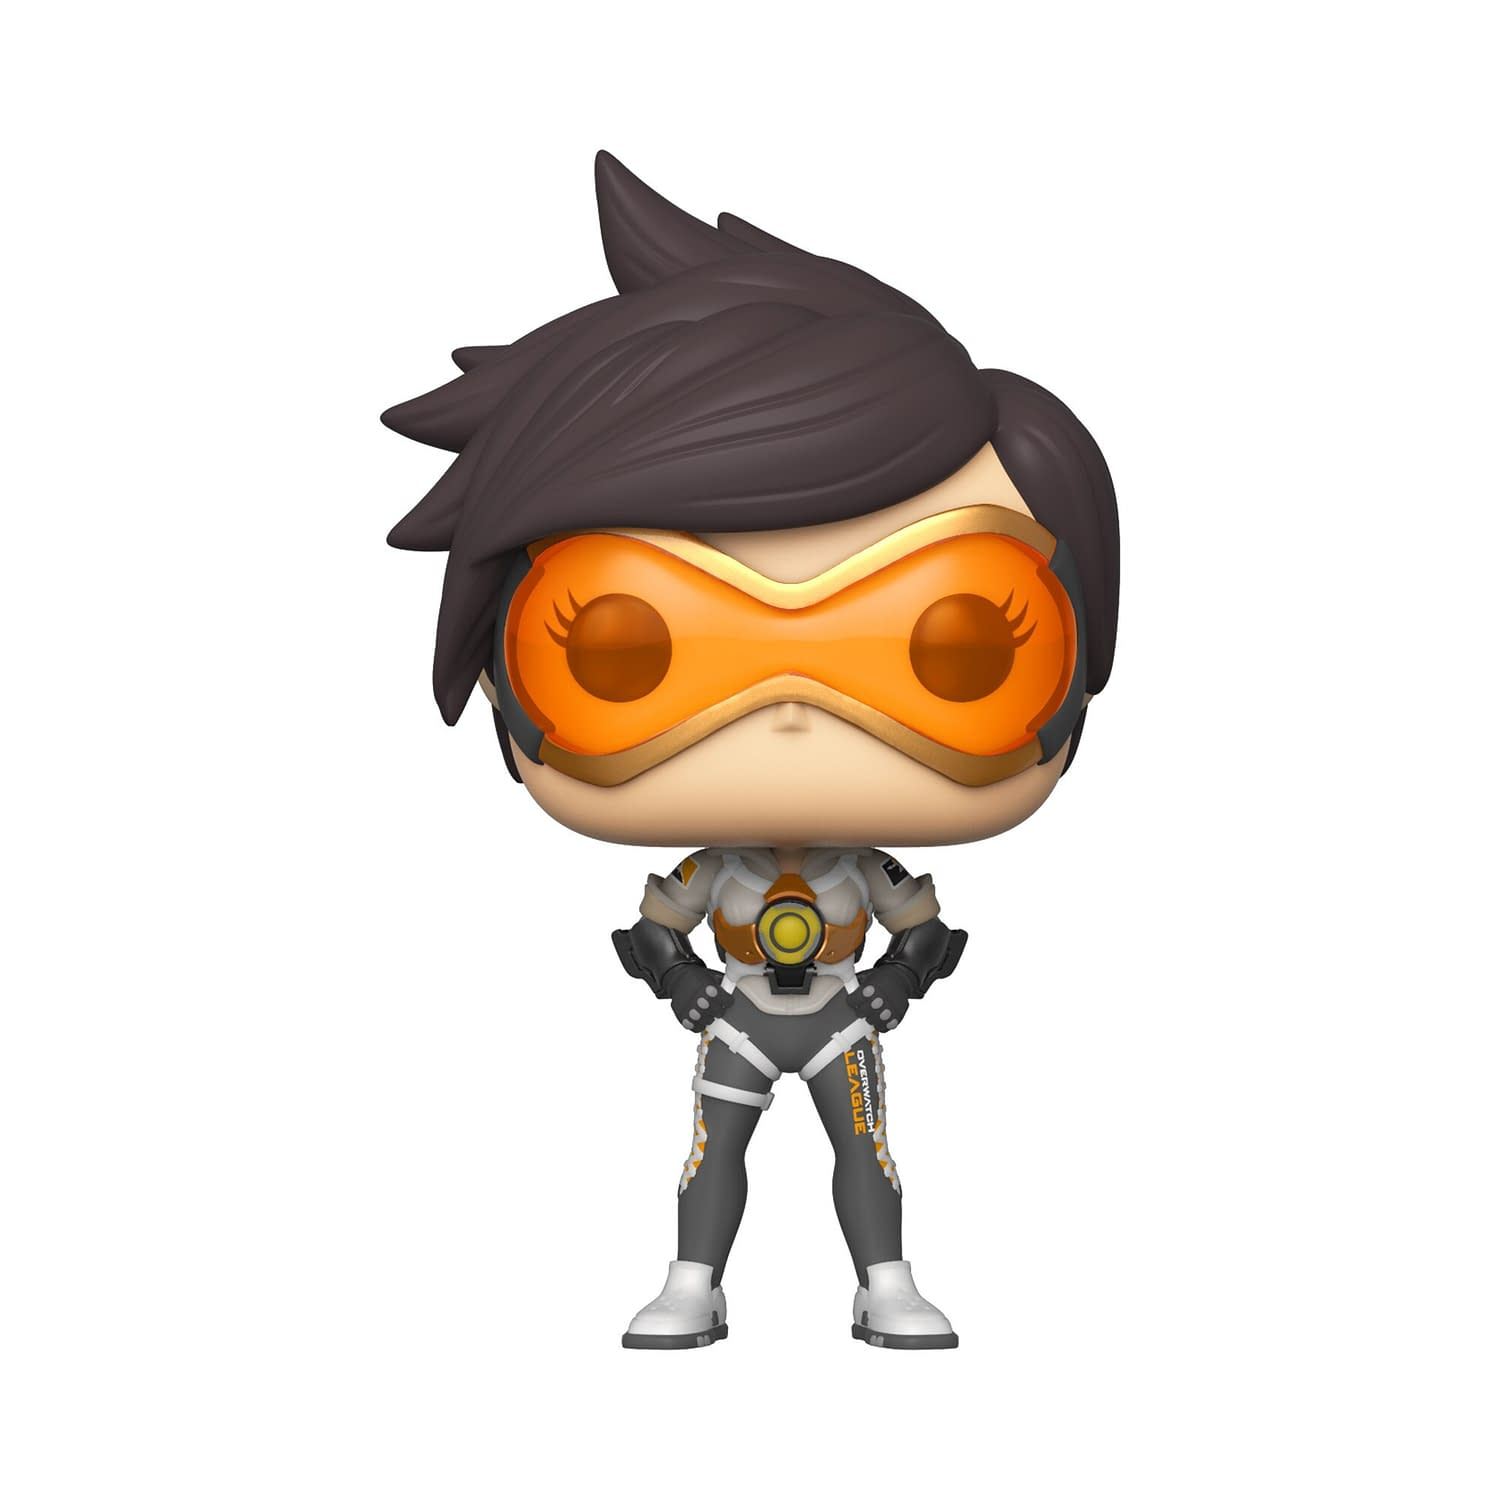 Overwatch League Get New Set of Exclusive Collectibles